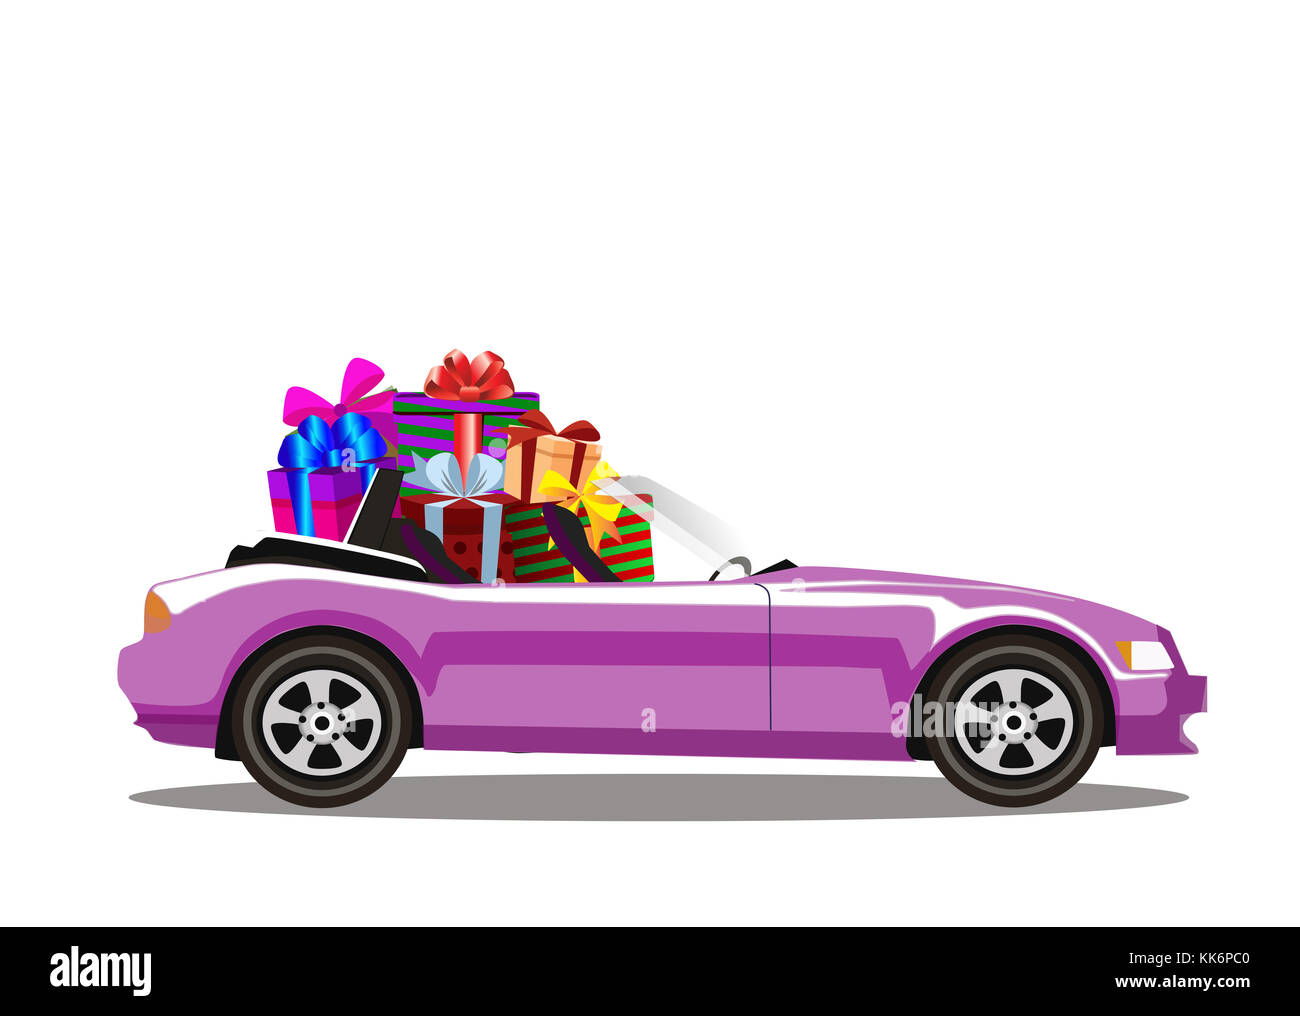 Pink Modern Cartoon Cabriolet Car Full Of Gift Boxes Isolated On